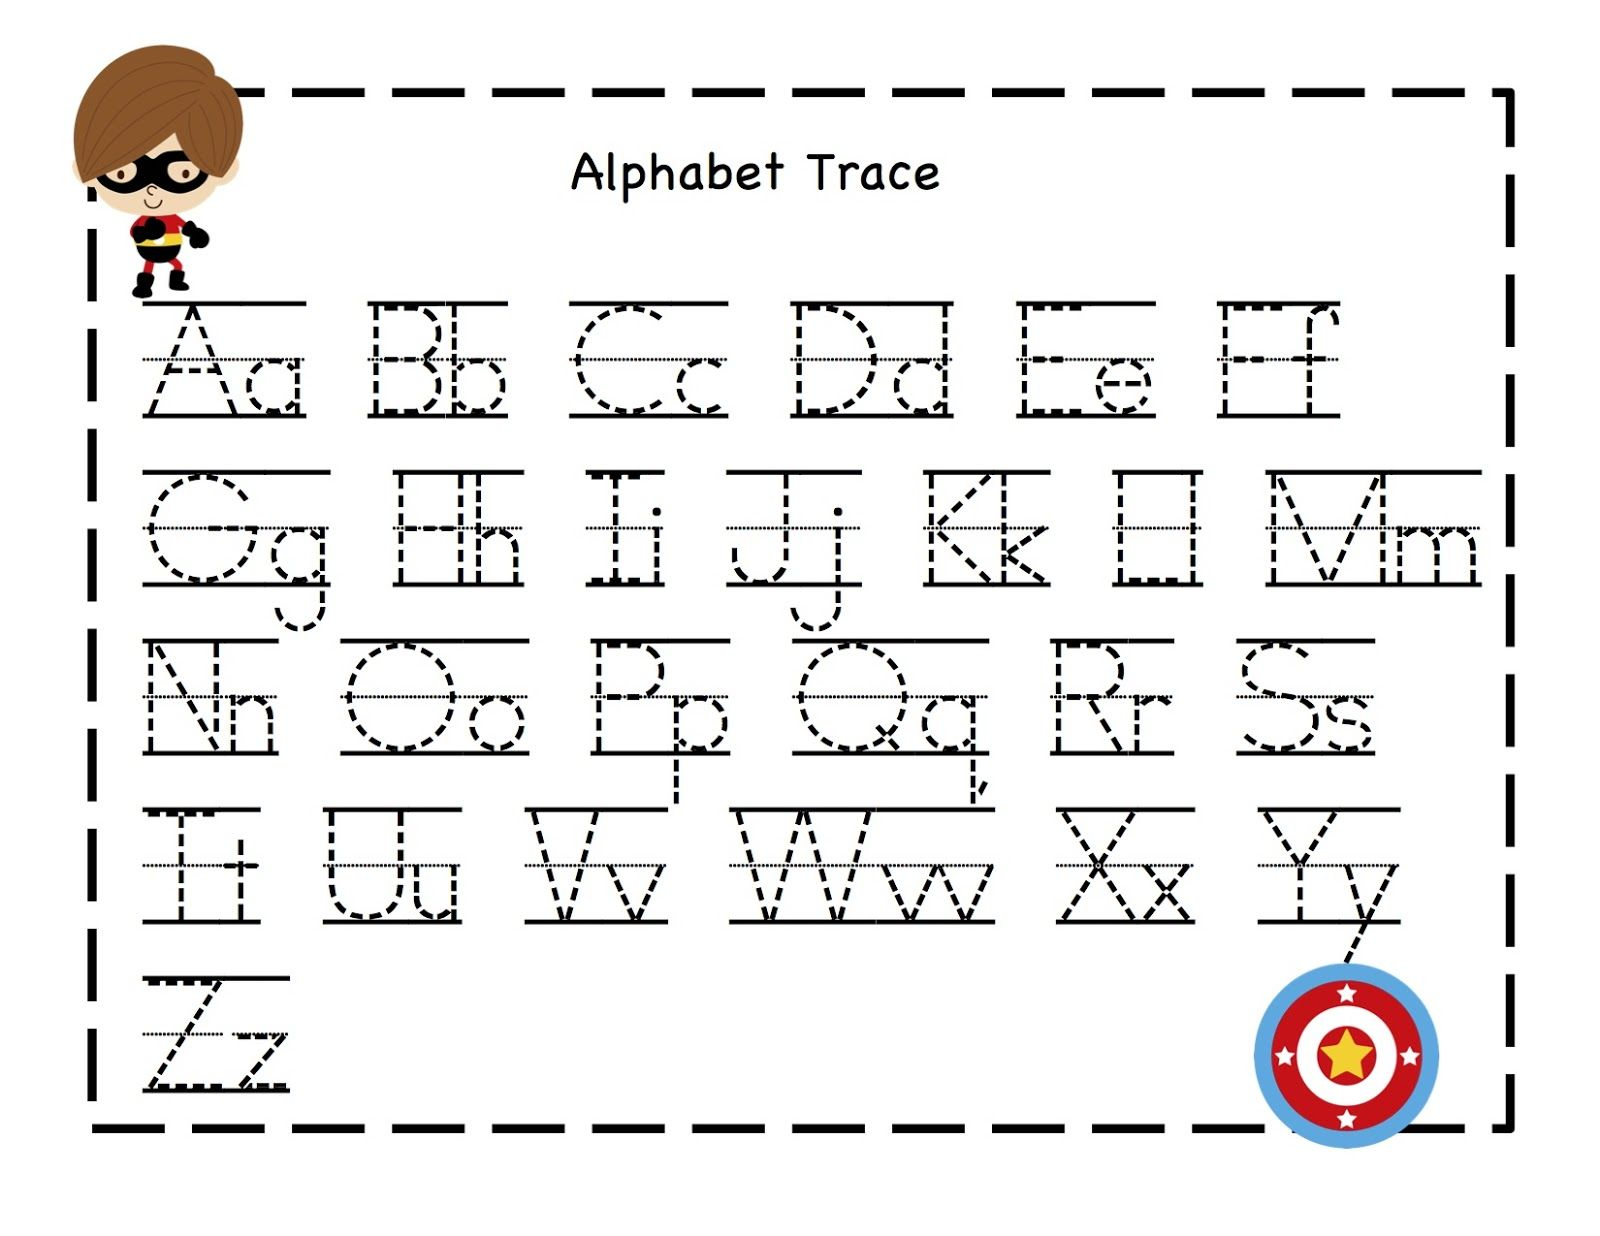 Uncategorized Superhero Printable Activities abc tracing sheets for preschool kids kiddo shelter worksheets preschoolerspreschool alphabetpreschool printablessuperhero